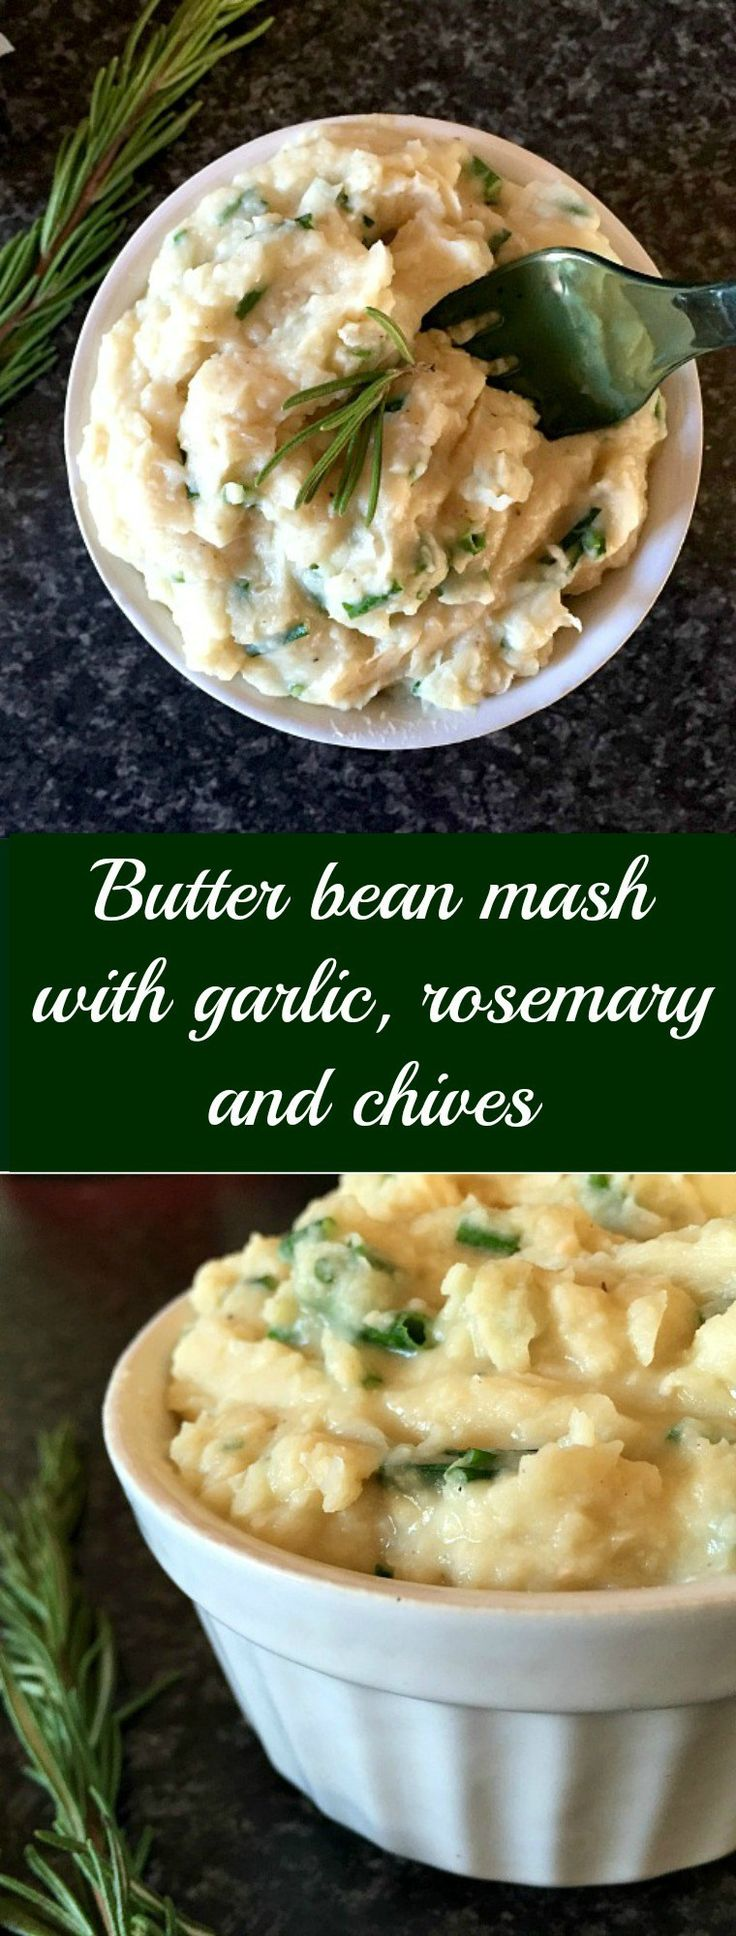 Butter bean mash with garlic, rosemary and chives, a great vegan side dish recipe that is low in fat and loaded with protein and fibre. Simple, delicious and healthy.